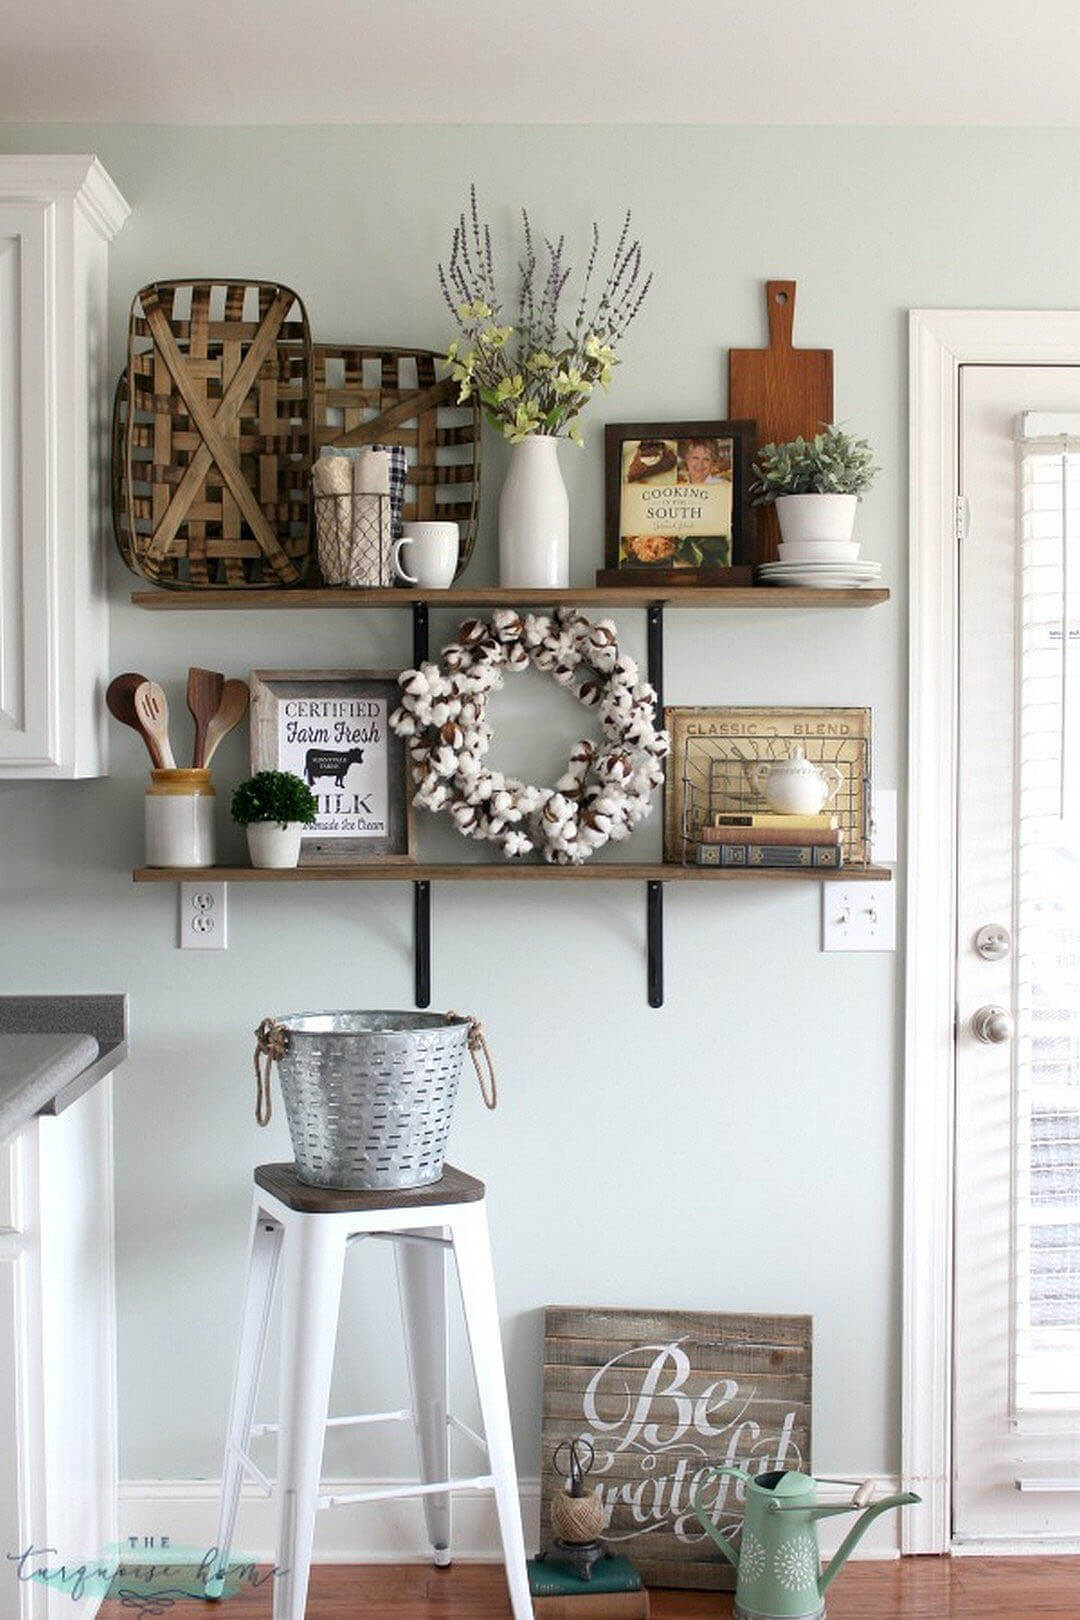 Best ideas about Kitchen Decorating Accessories . Save or Pin 36 Best Kitchen Wall Decor Ideas and Designs for 2019 Now.